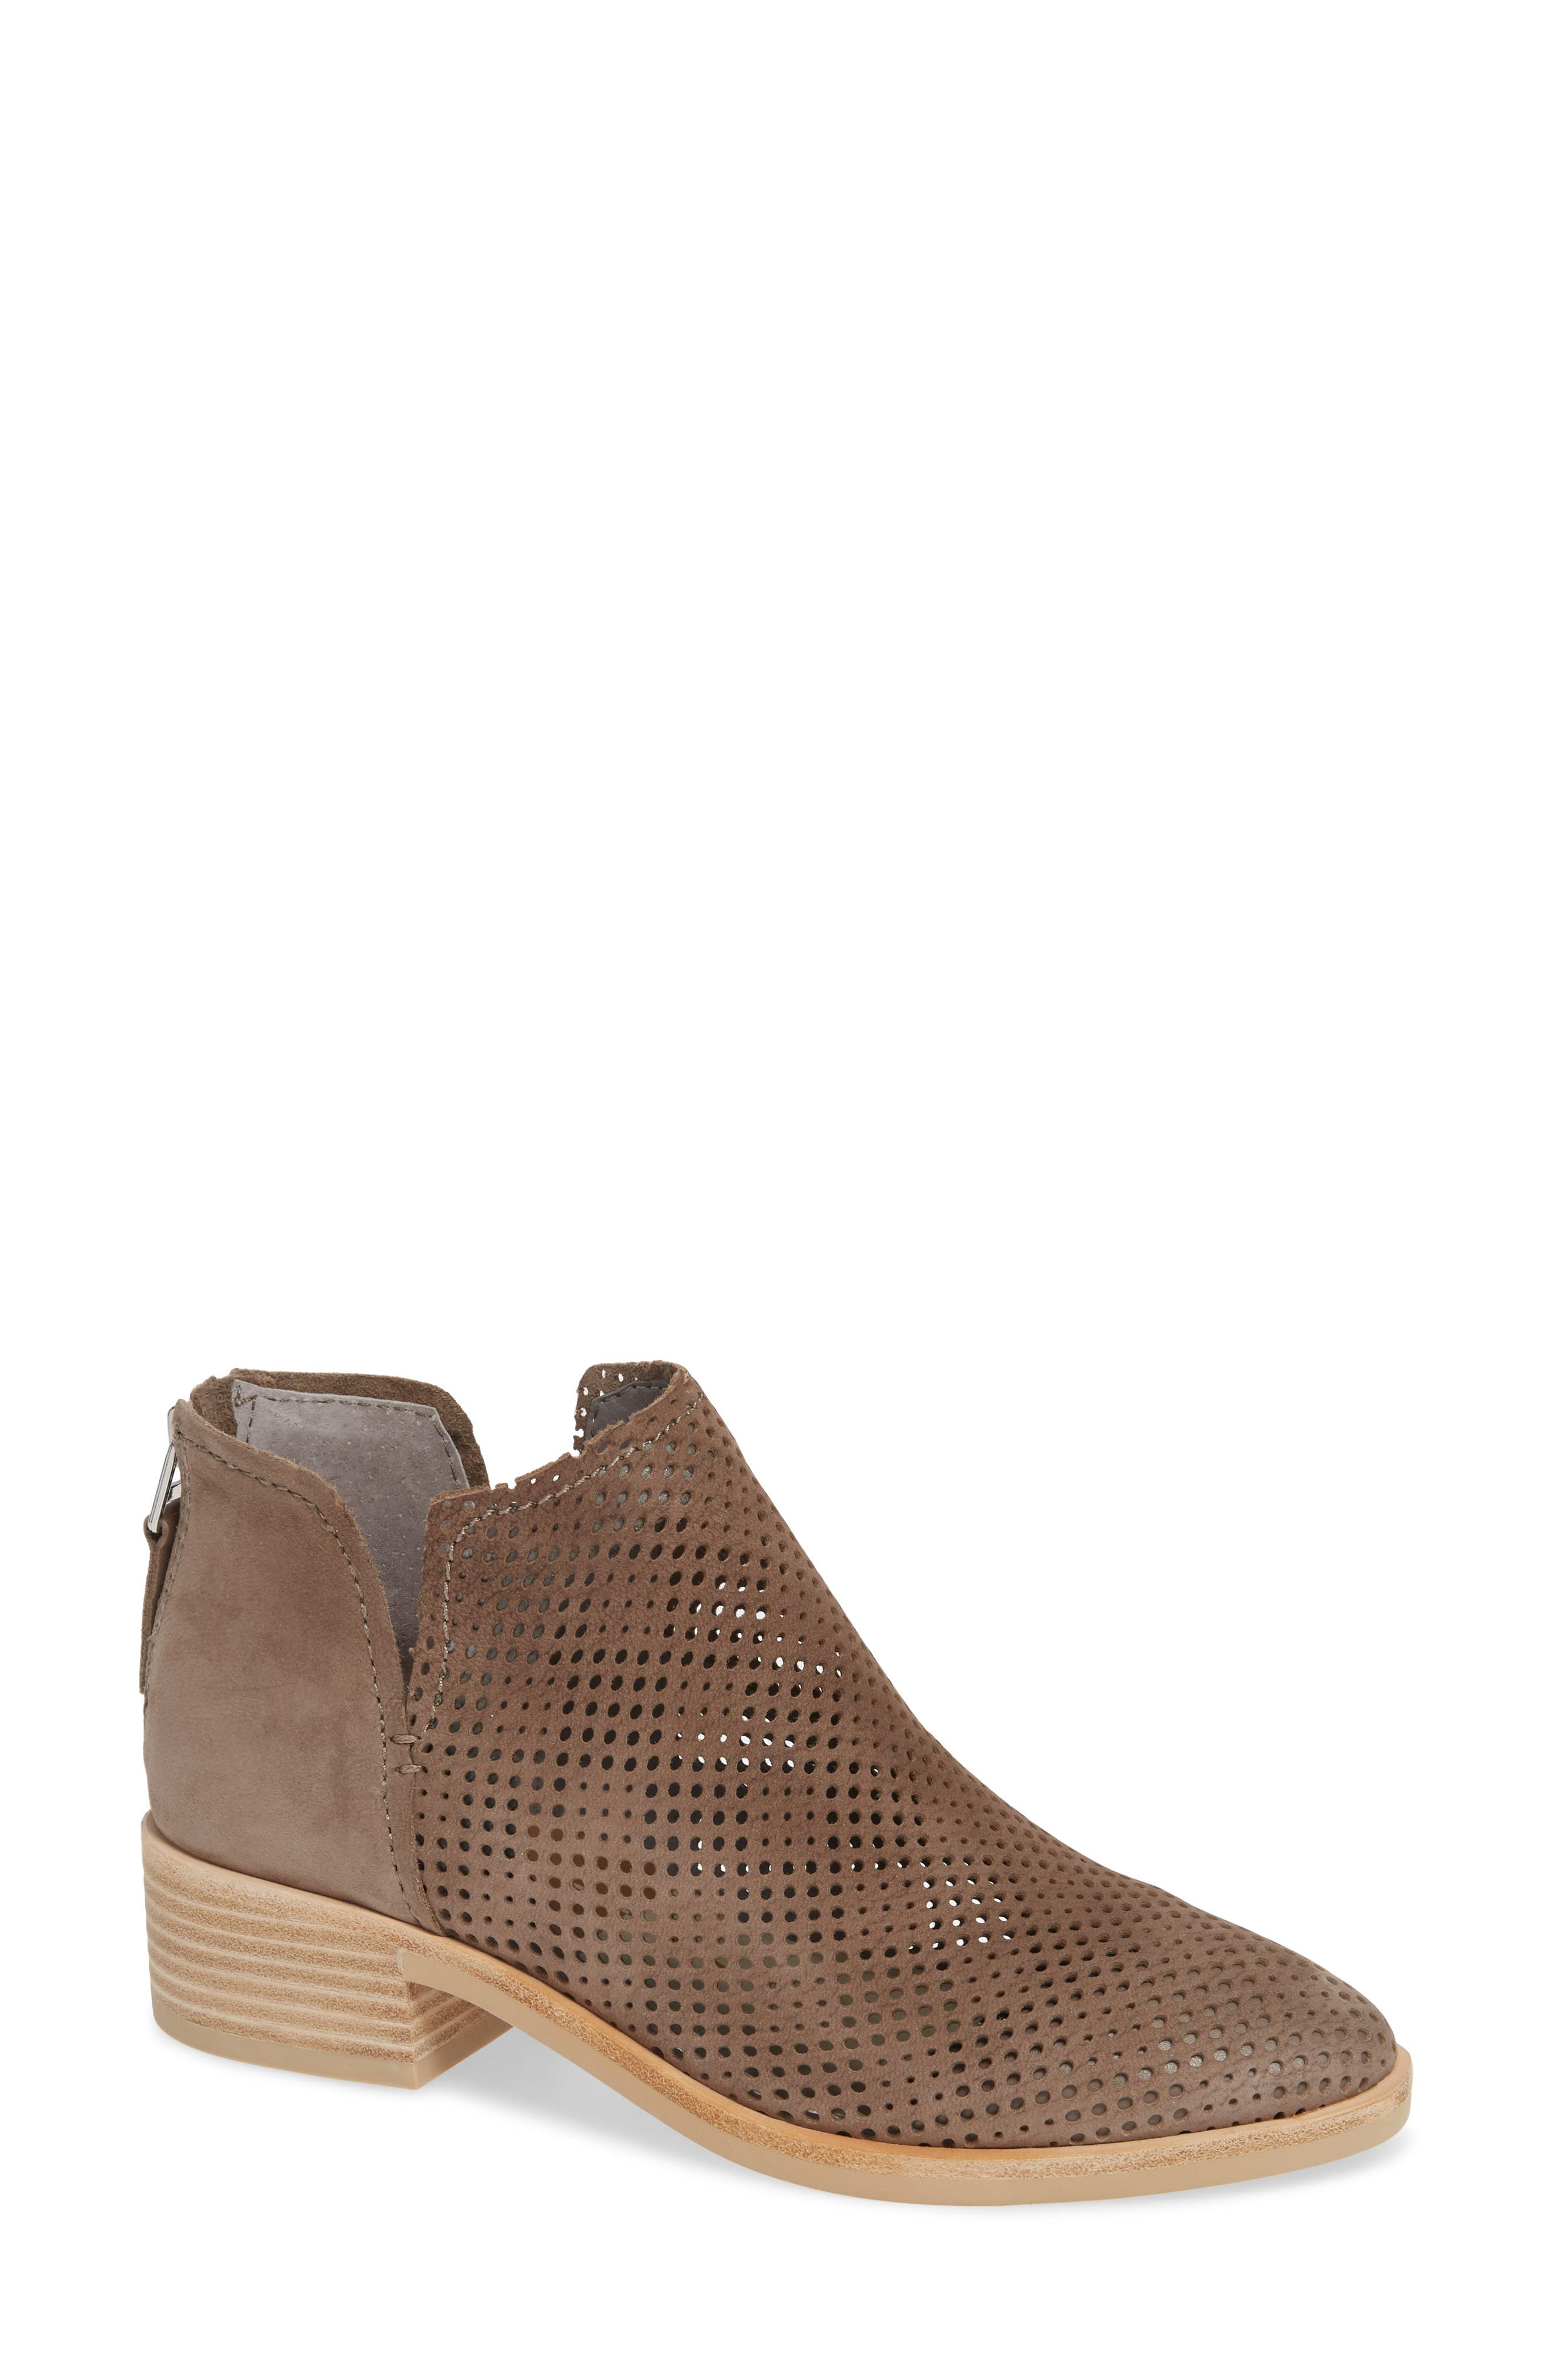 Dolce Vita Tauris Perforated Bootie- Grey